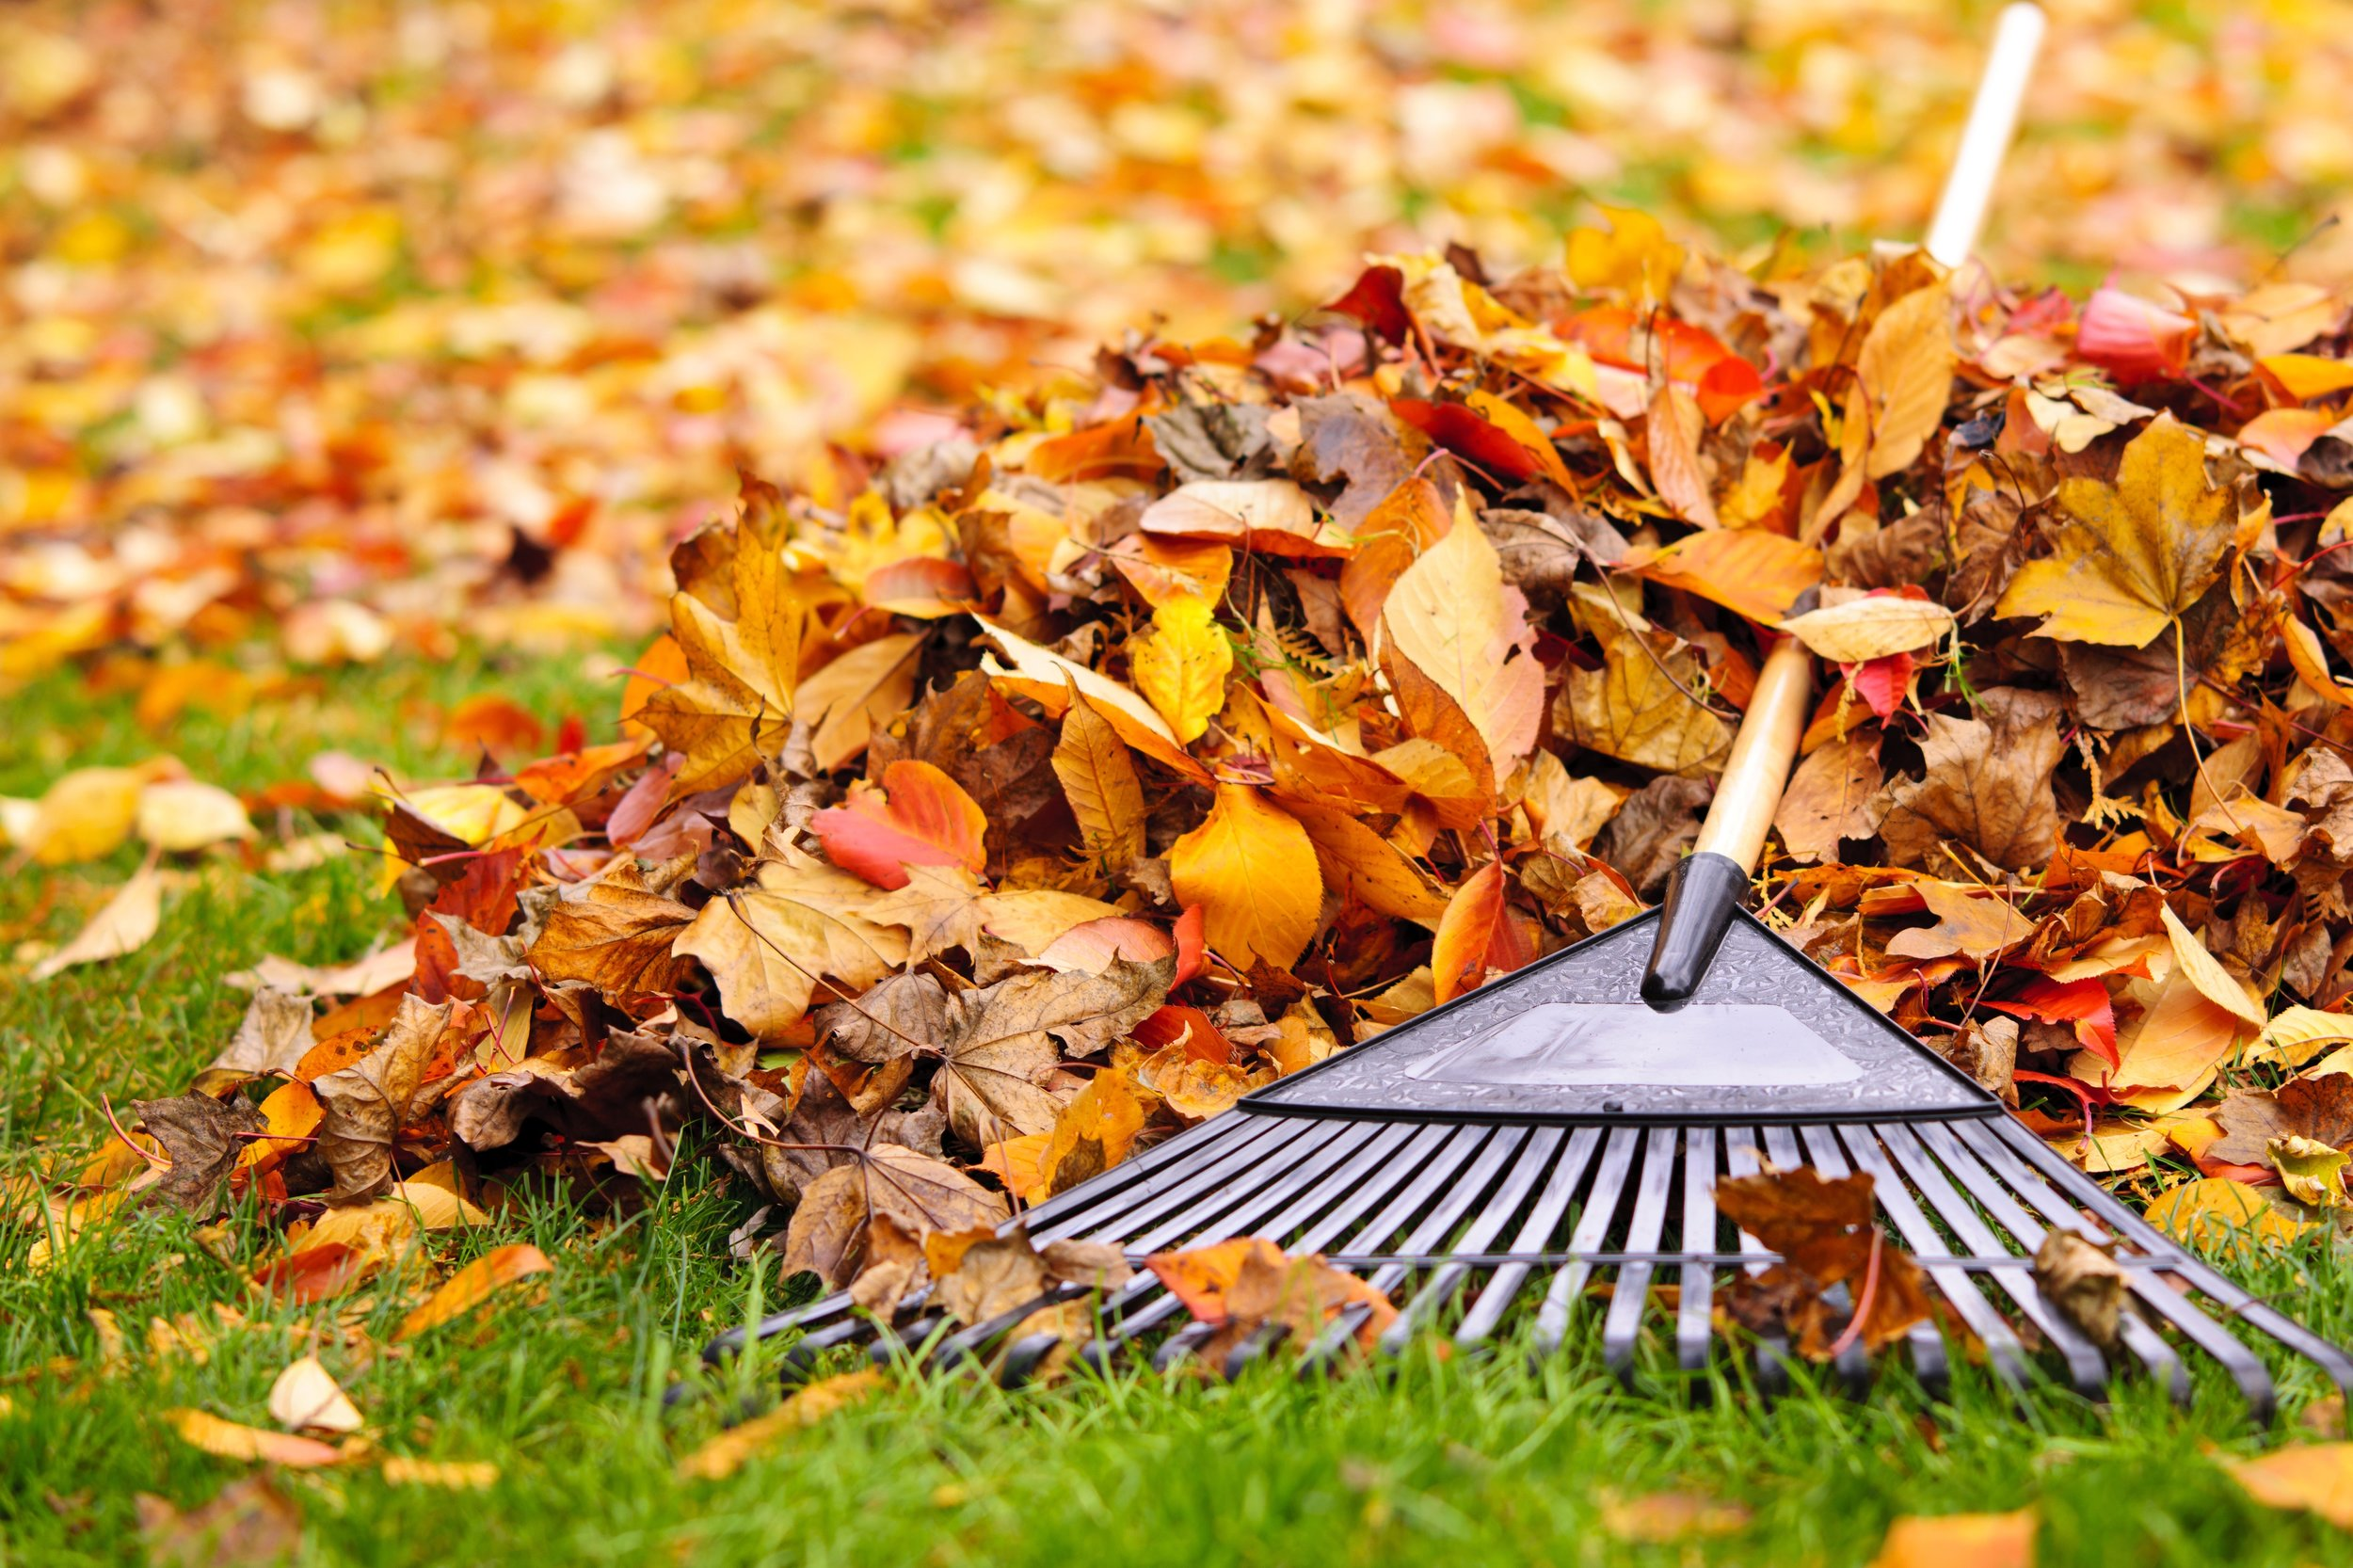 calvary church rake and leaves istock image.jpg